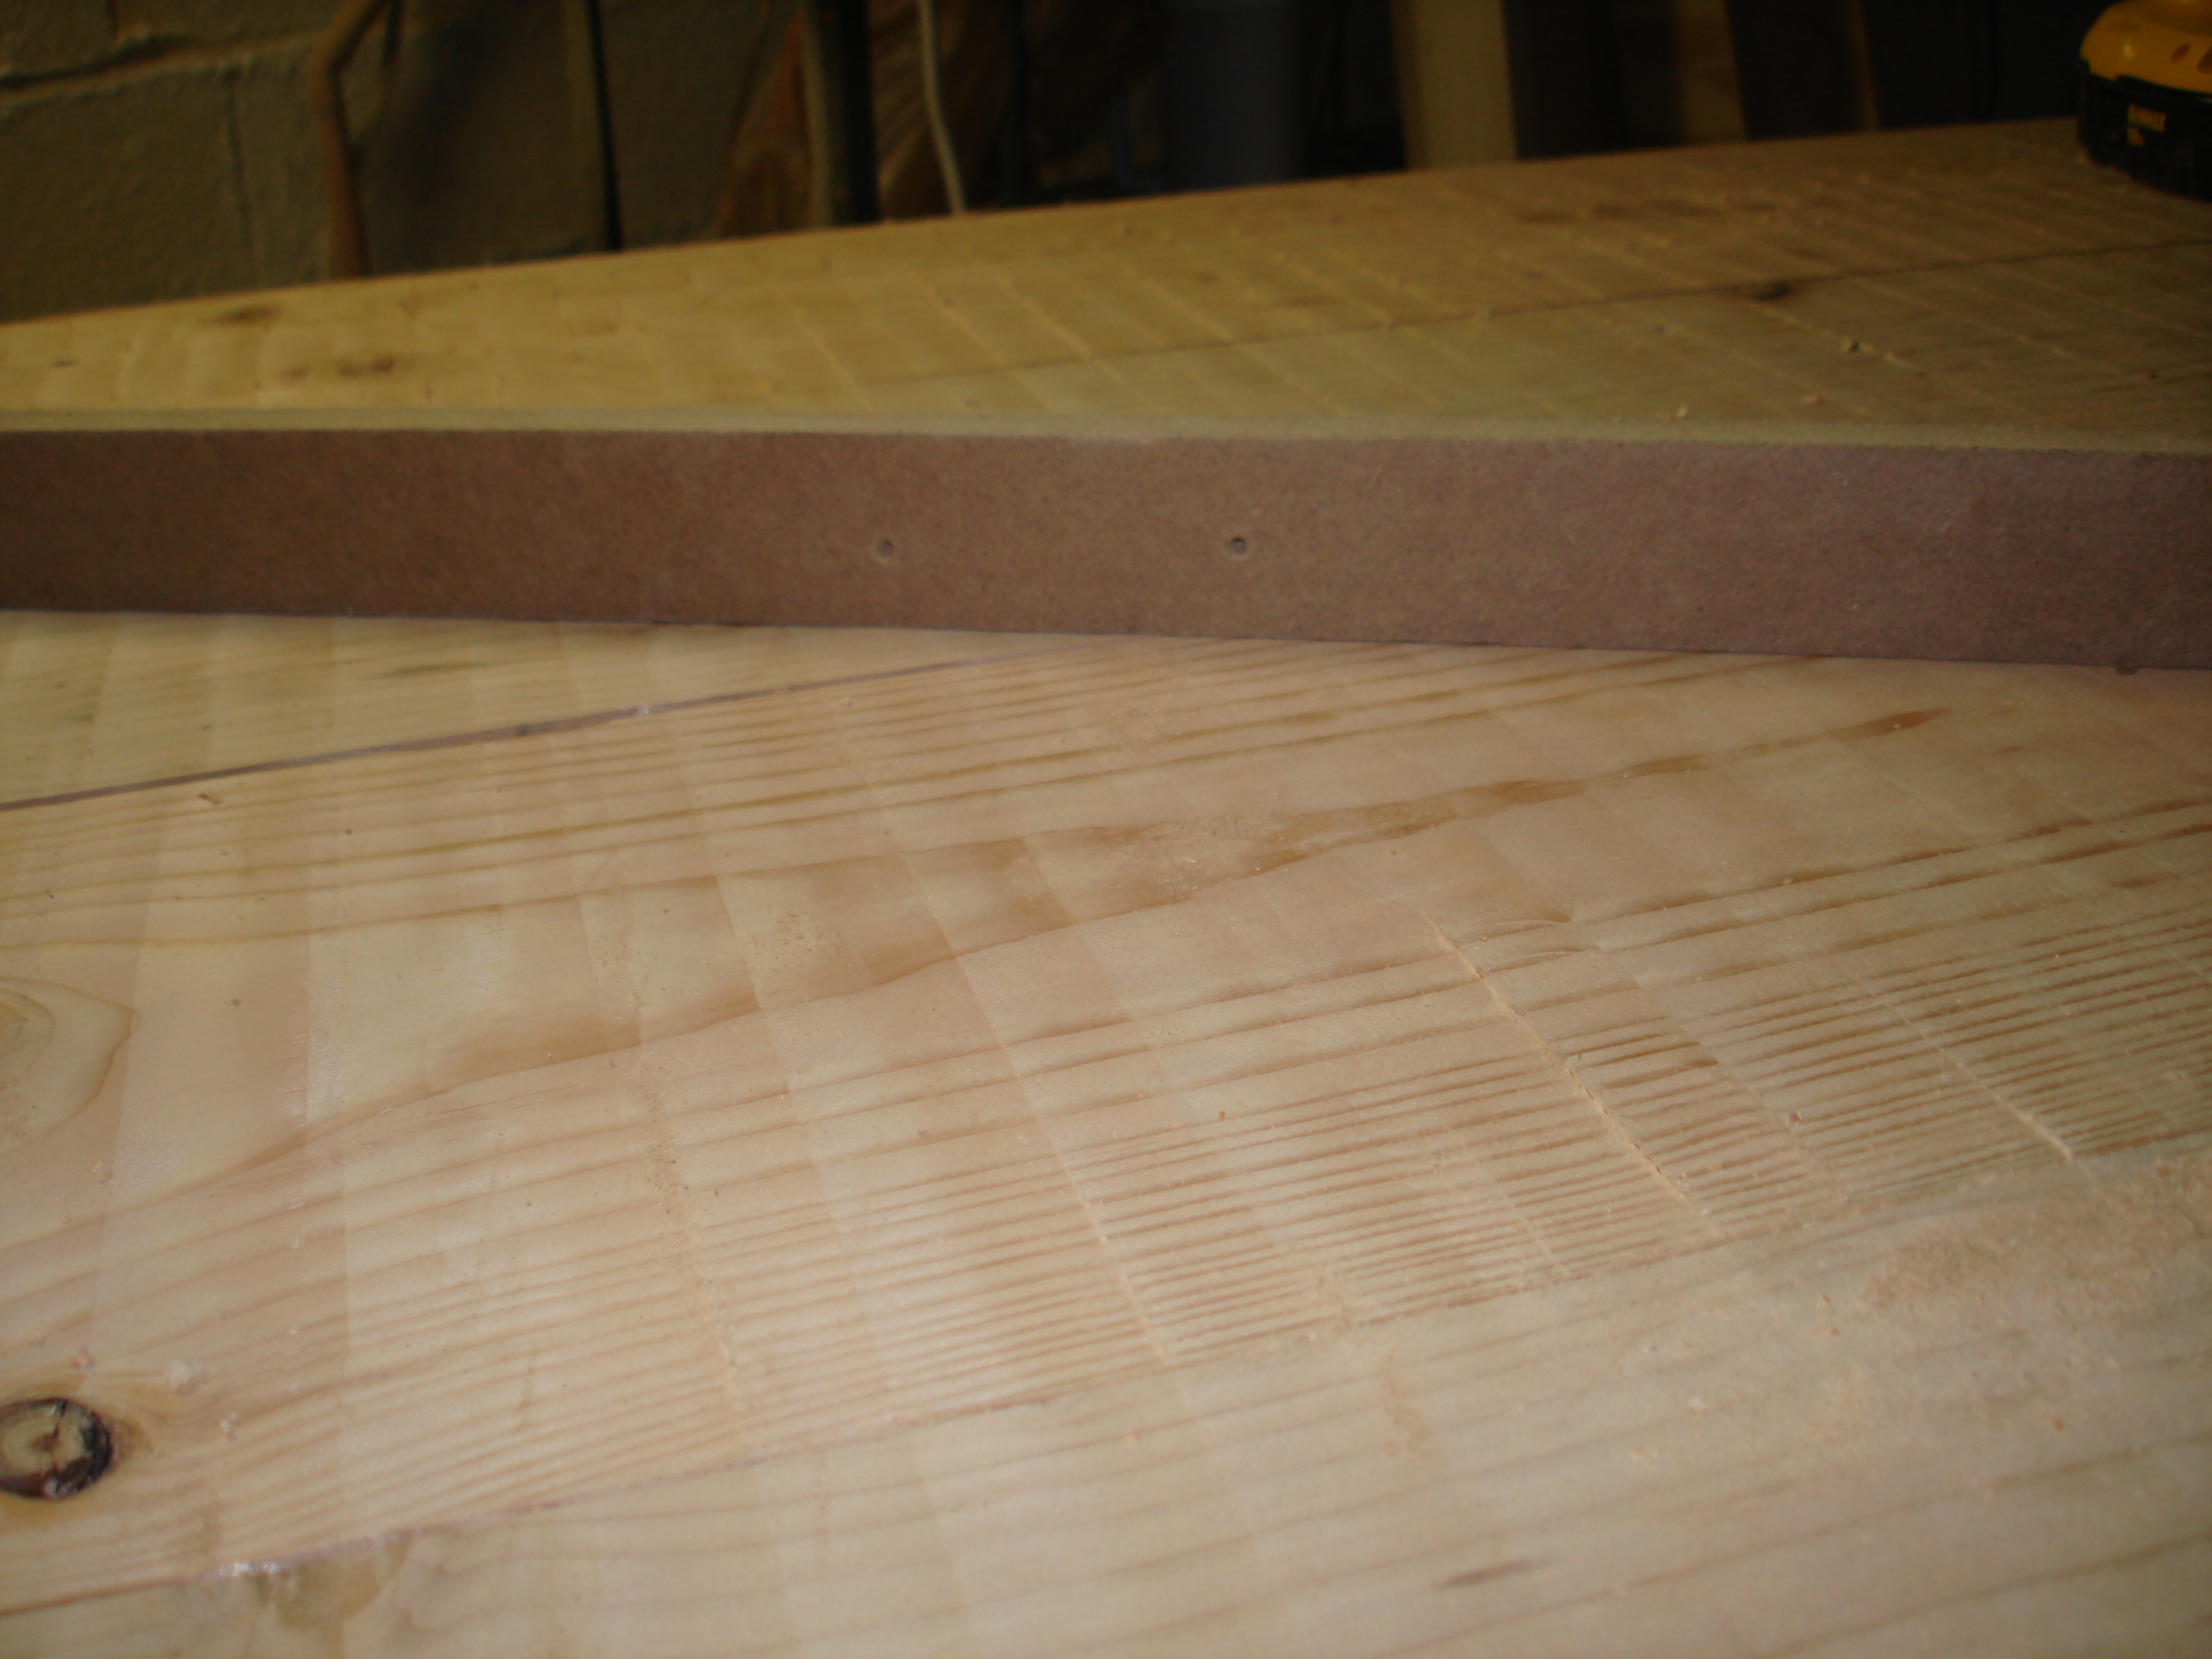 I used the sacrificial guide to check the flatness of the tabletop base after the second pass and was happy with the results.  You can still see the tool marks from the router.  I took a couple of passes with the belt sander to smooth it out, but wasn't too worried about the ridges